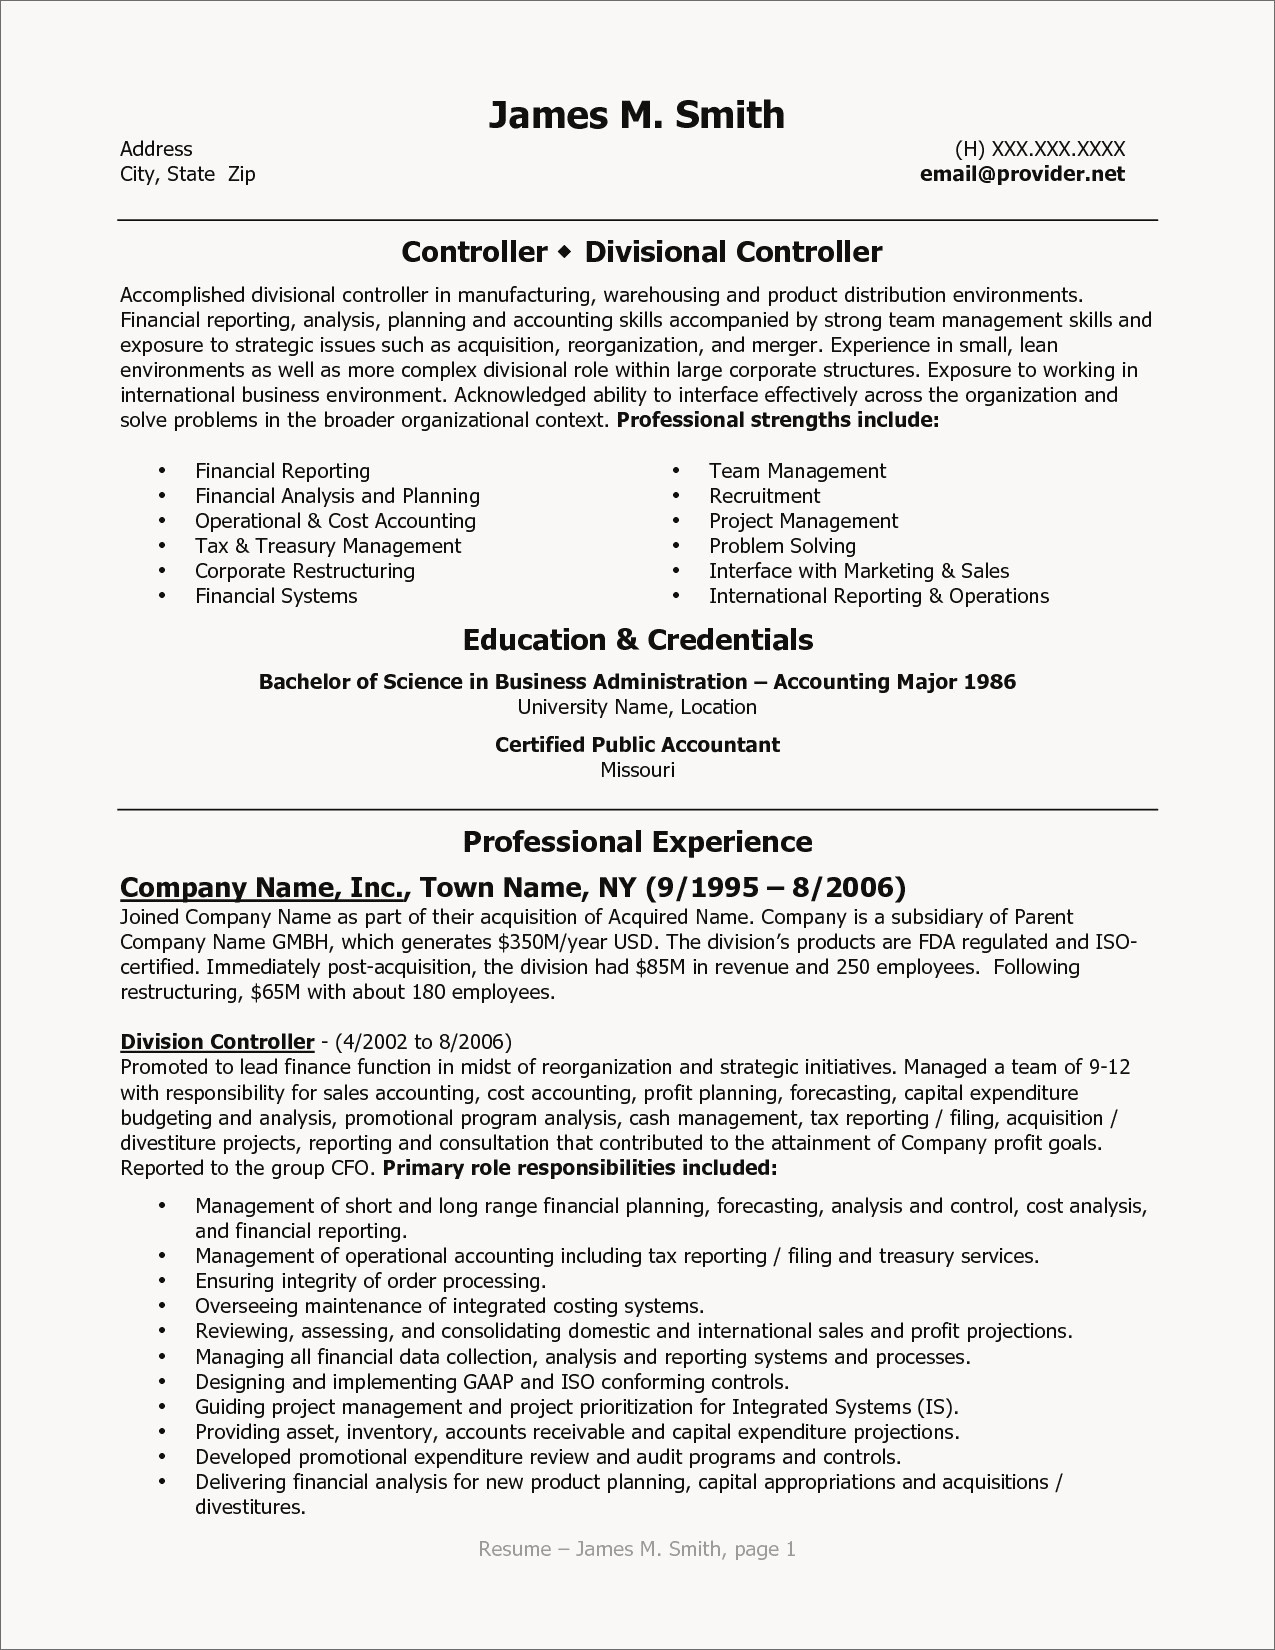 finance resume template example-Business Plan Financial Template Awesome Cfo Resume Template Inspirational Actor Resumes 0d Financial 19-t